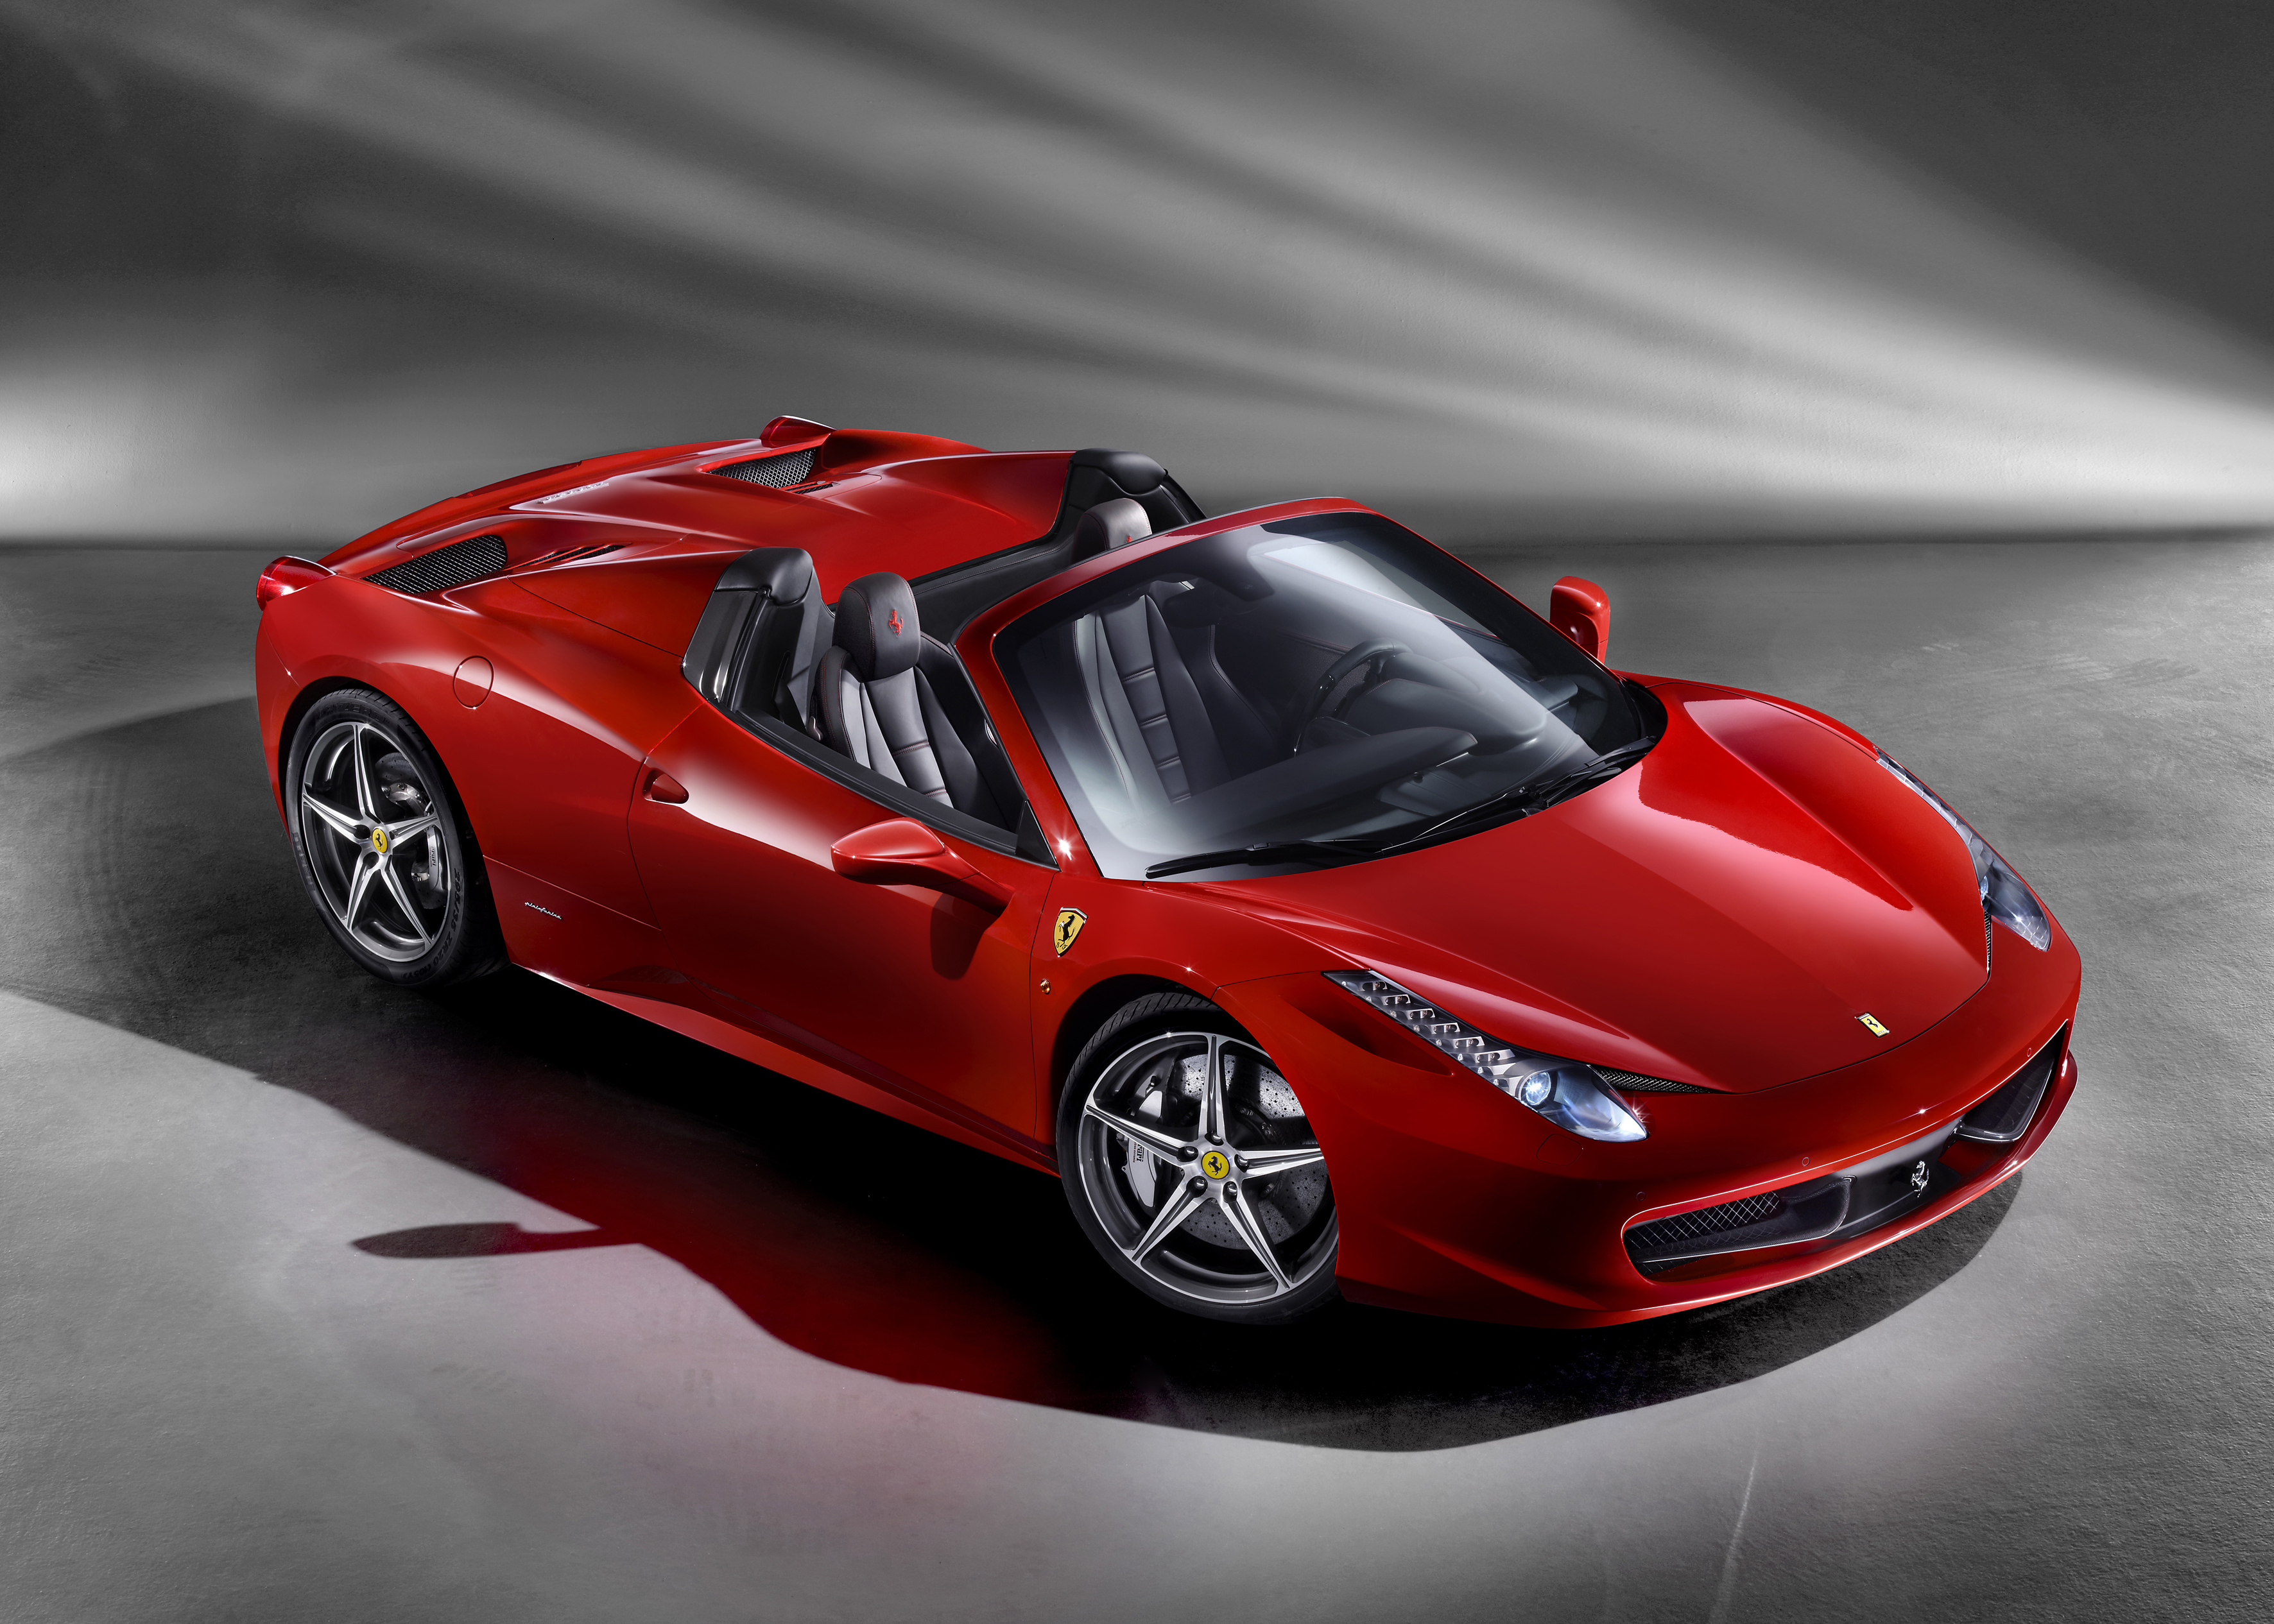 Ferrari's 458 Spider - mid-rear engined berlinetta with retractable hard top